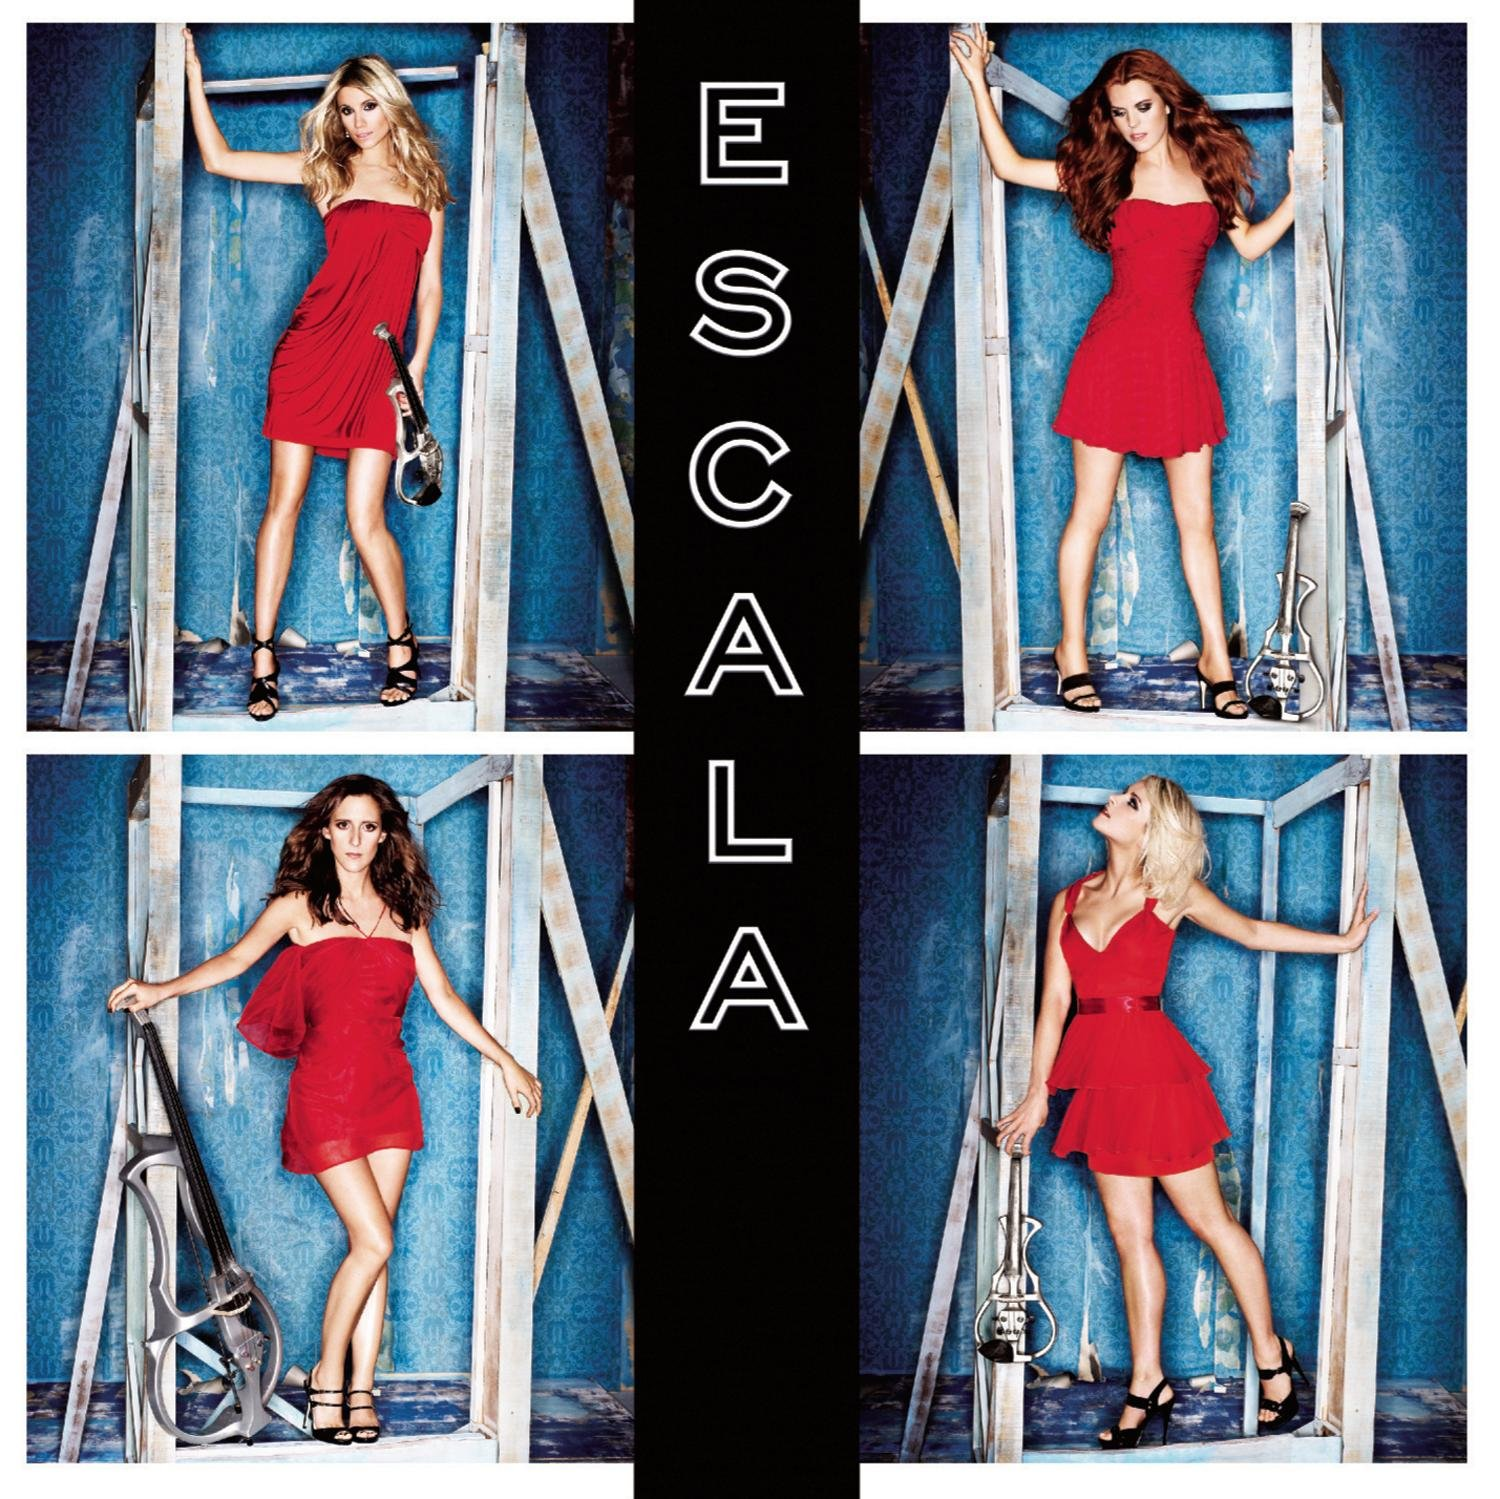 Escala by CD